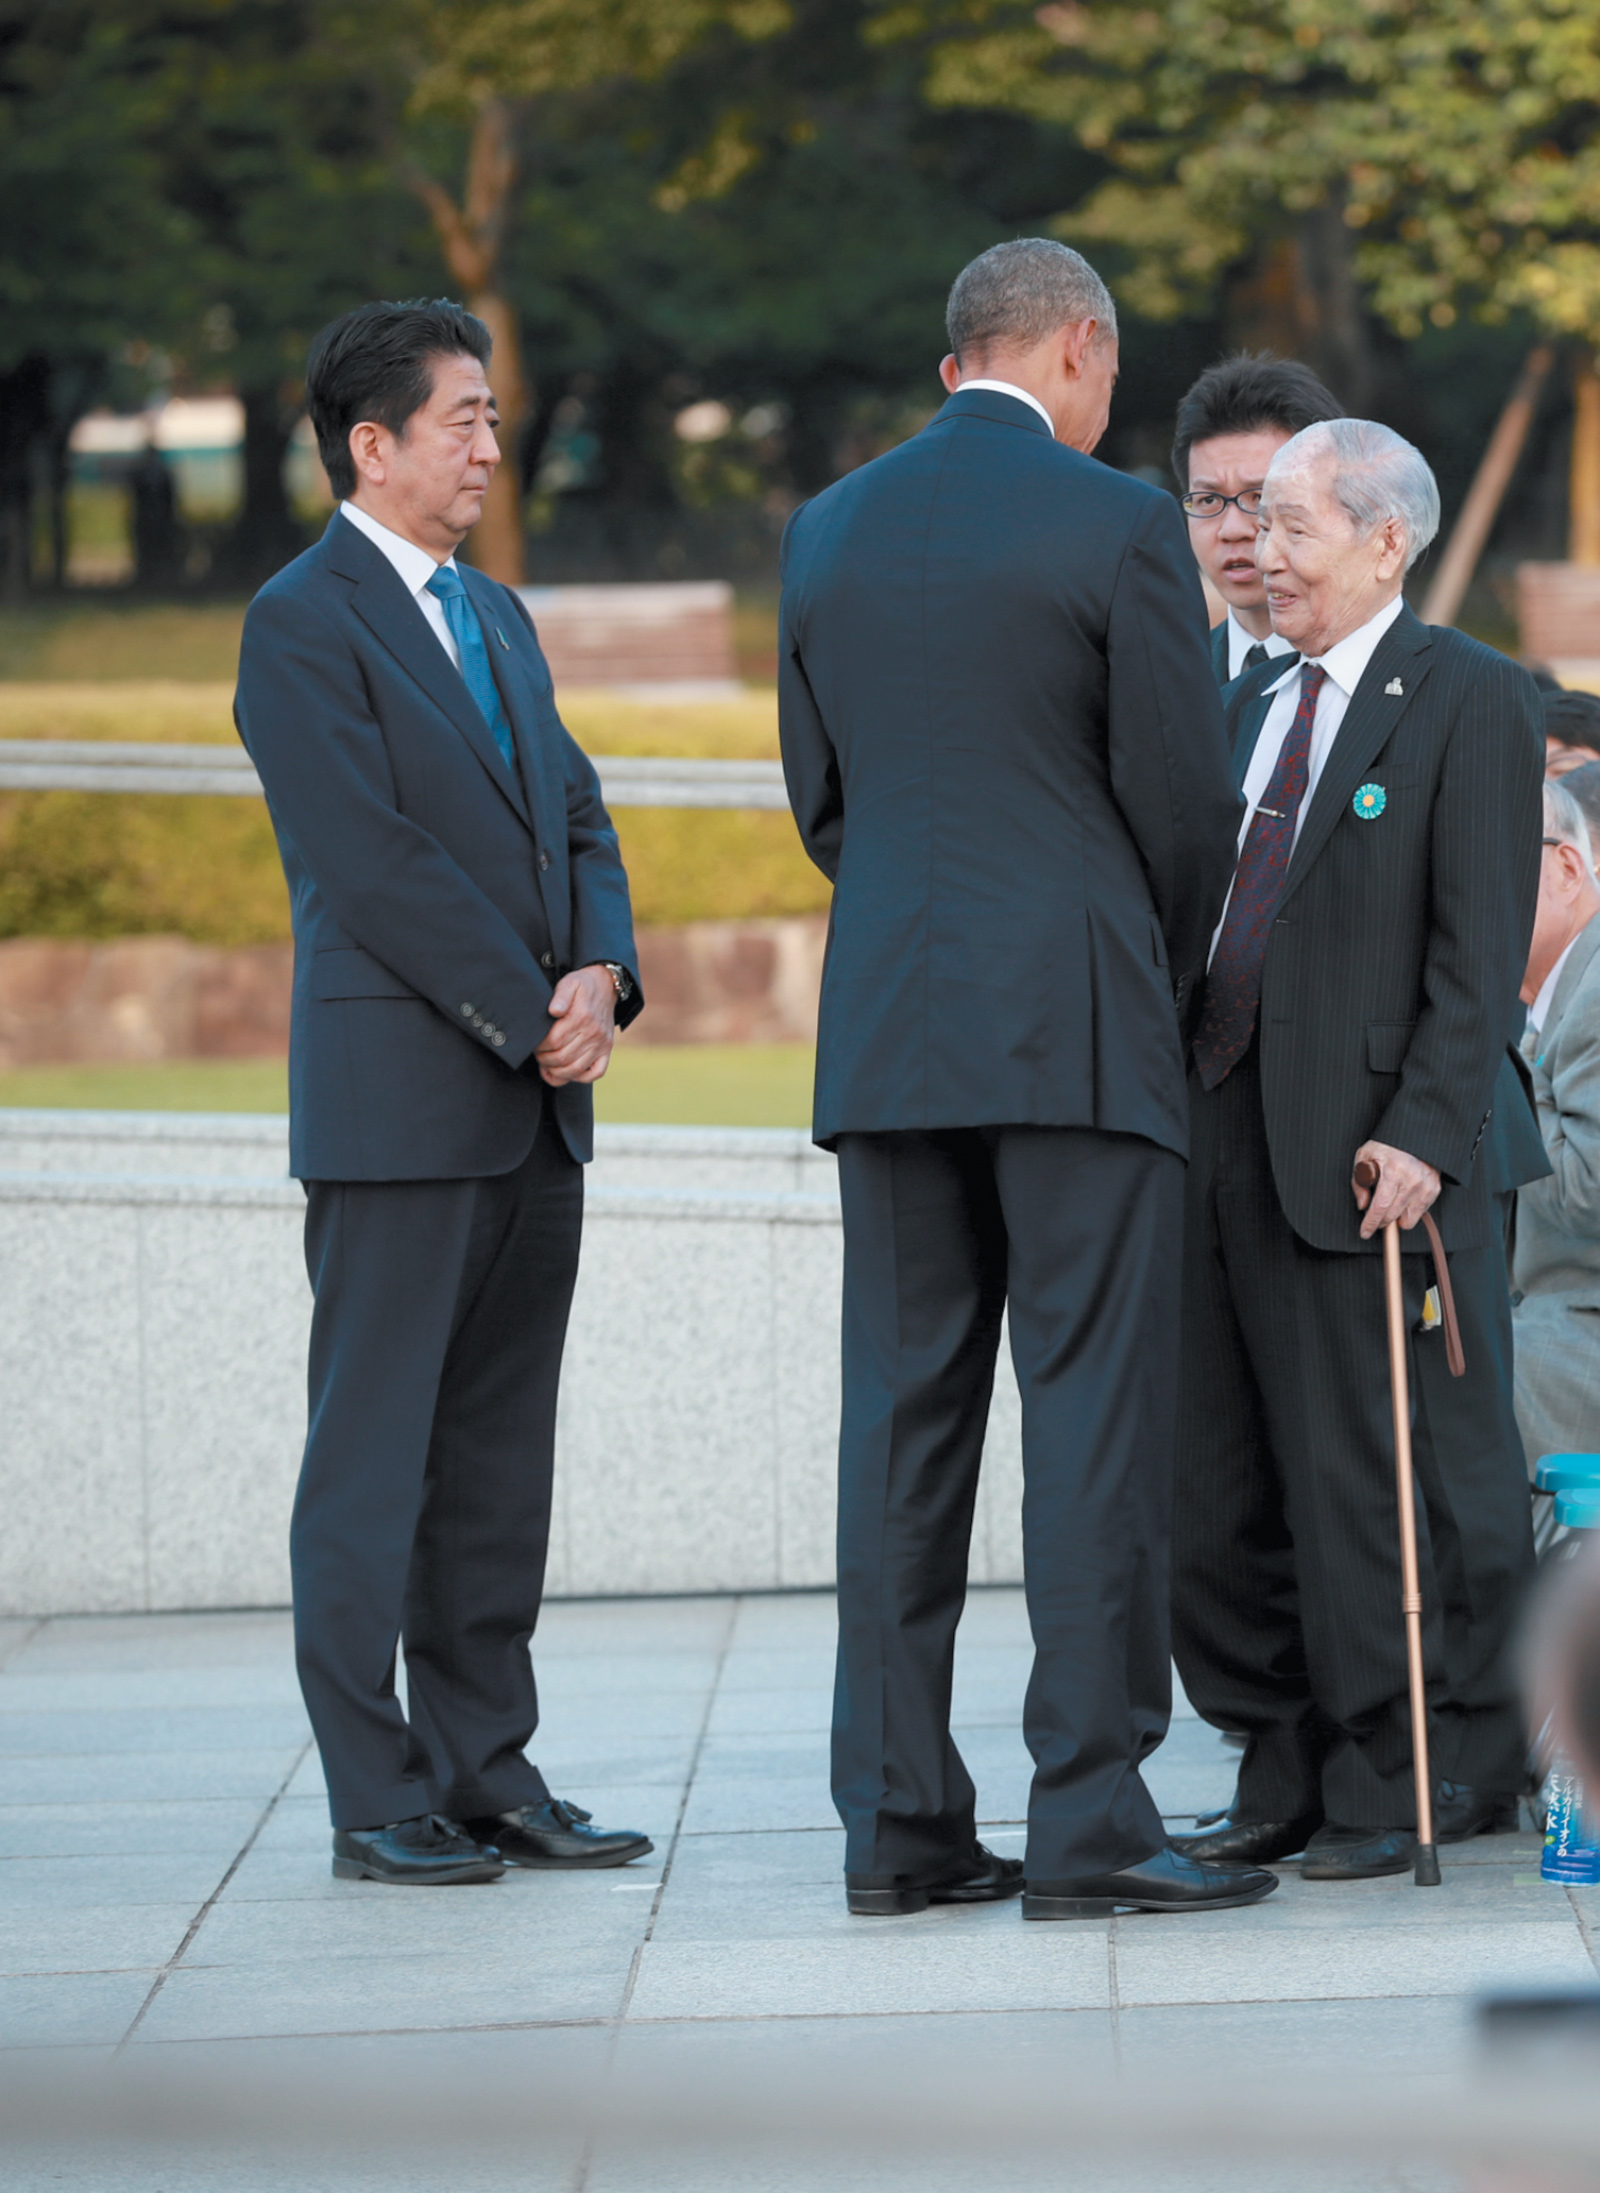 President Obama with Sunao Tsuboi, a survivor of the US's atomic bombing of Hiroshima in 1945, during a ceremony at the Hiroshima Peace Memorial, May 2016. Japanese Prime Minister Shinzo Abe is at left.